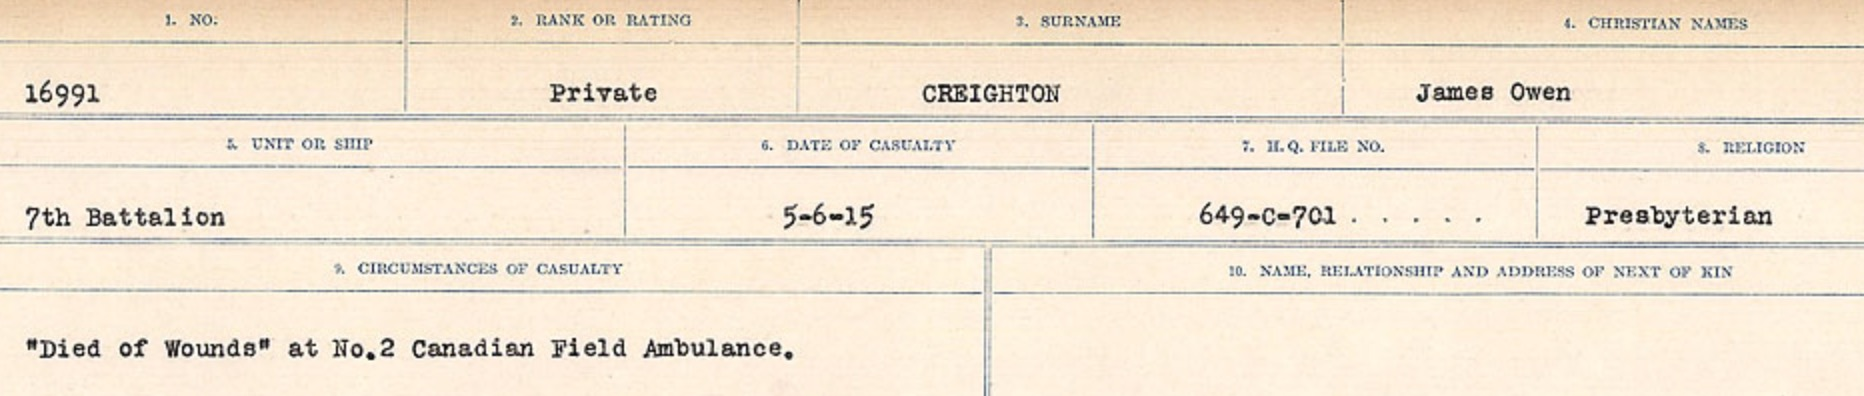 Circumstances of death registers– Source: Library and Archives Canada. CIRCUMSTANCES OF DEATH REGISTERS, FIRST WORLD WAR Surnames: CRABB TO CROSSLAND Microform Sequence 24; Volume Number 31829_B016733. Reference RG150, 1992-93/314, 168. Page 459 of 788.